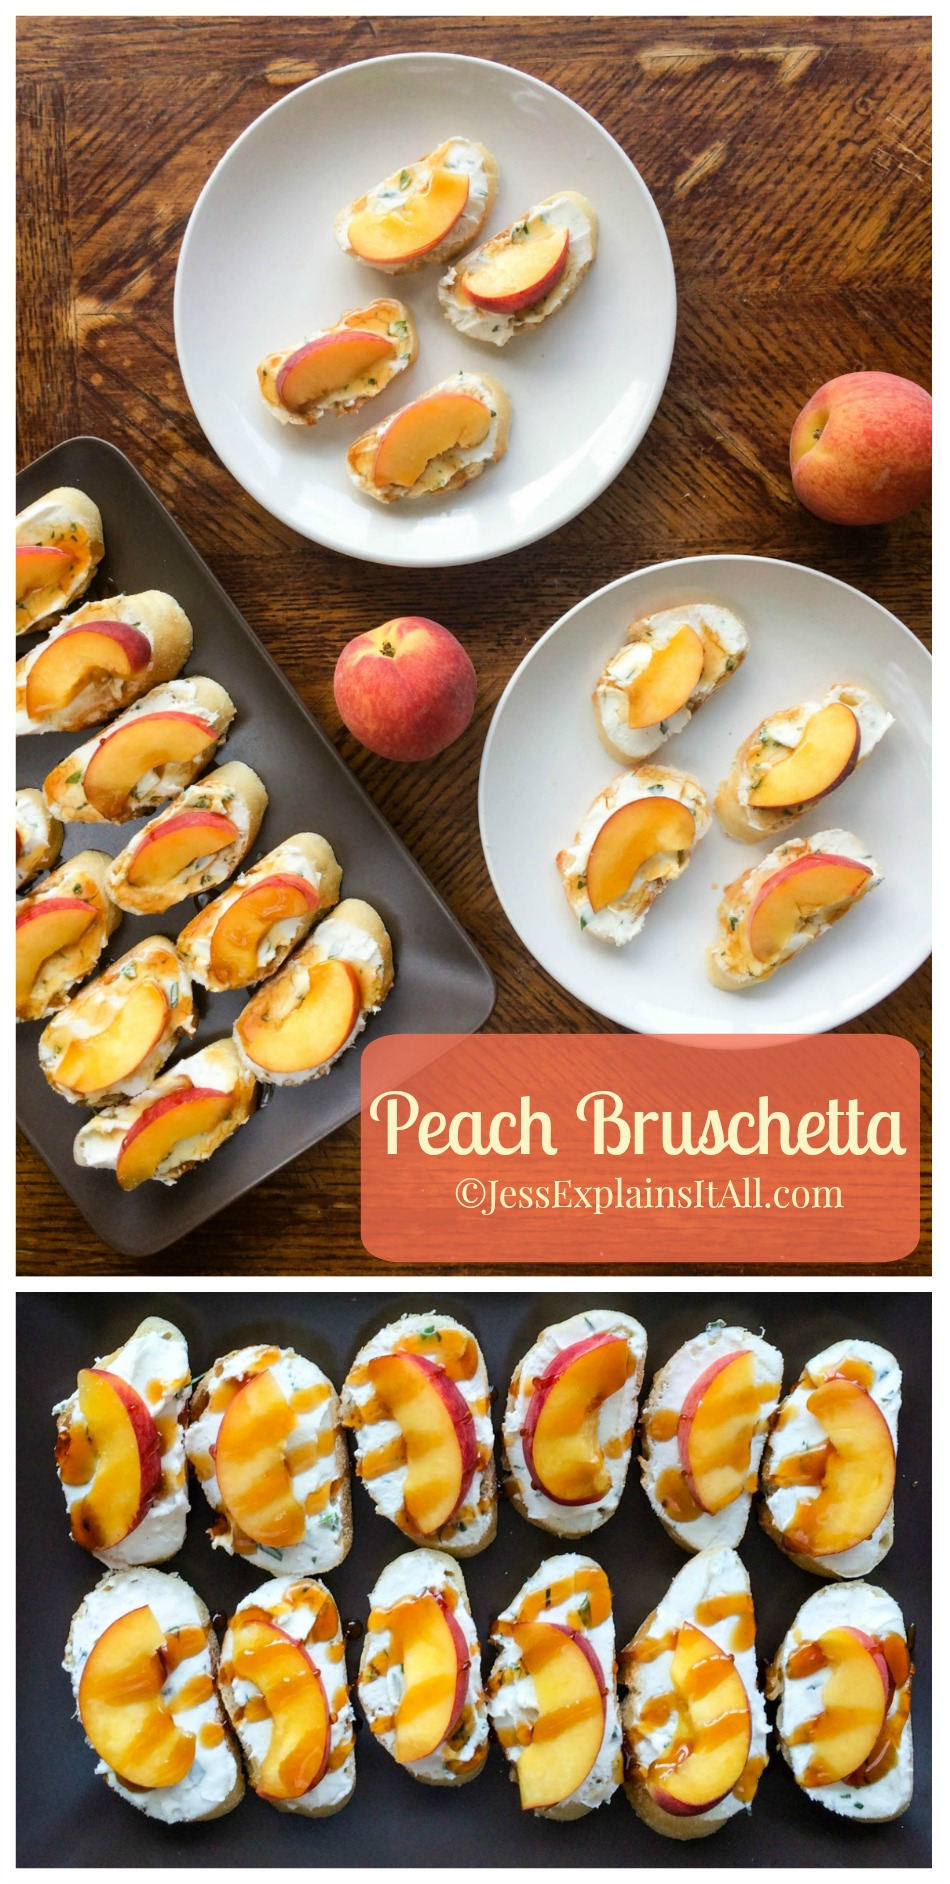 This peach bruschetta takes 10 min - making it the perfect quick & easy summer recipe! You could take it to a potluck or have it at home as a healthy snack! Check out the recipe at www.JessExplainsItAll.com #LetsCheese #CollectiveBias #ad